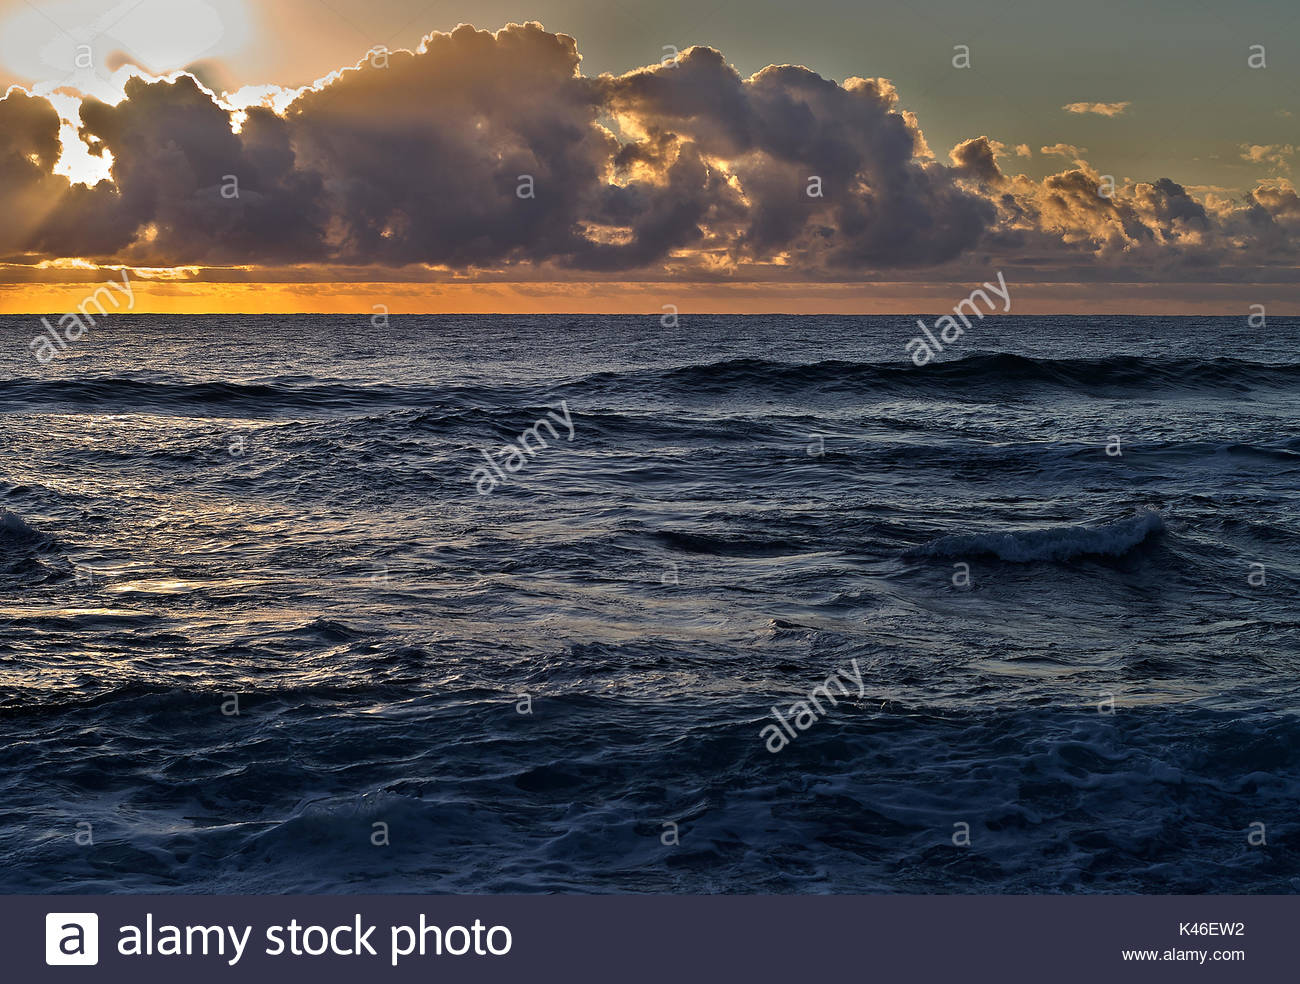 The sun rising over the Pacific Ocean, taken from Boulder Beach, NSW, Australia. - Stock Image